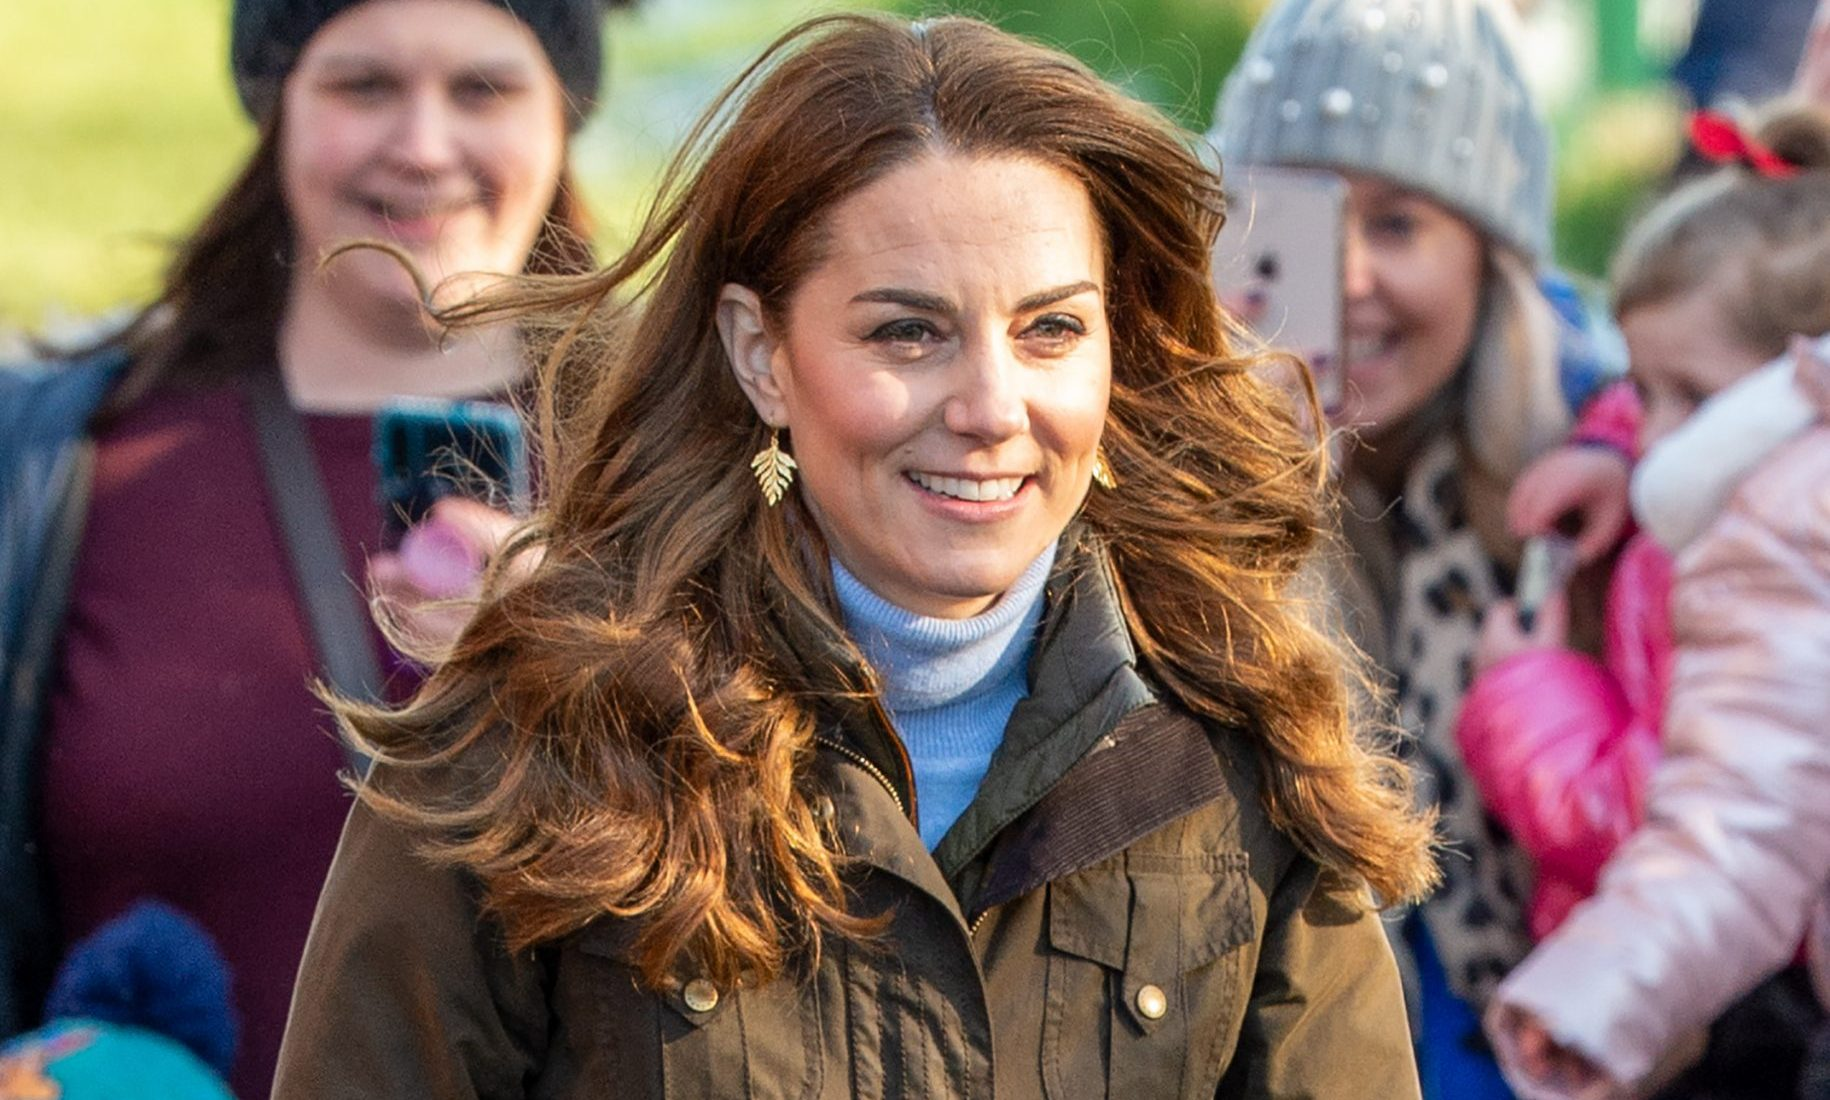 Royal experts reveal the nickname fans will have for Kate when she becomes Queen Consort